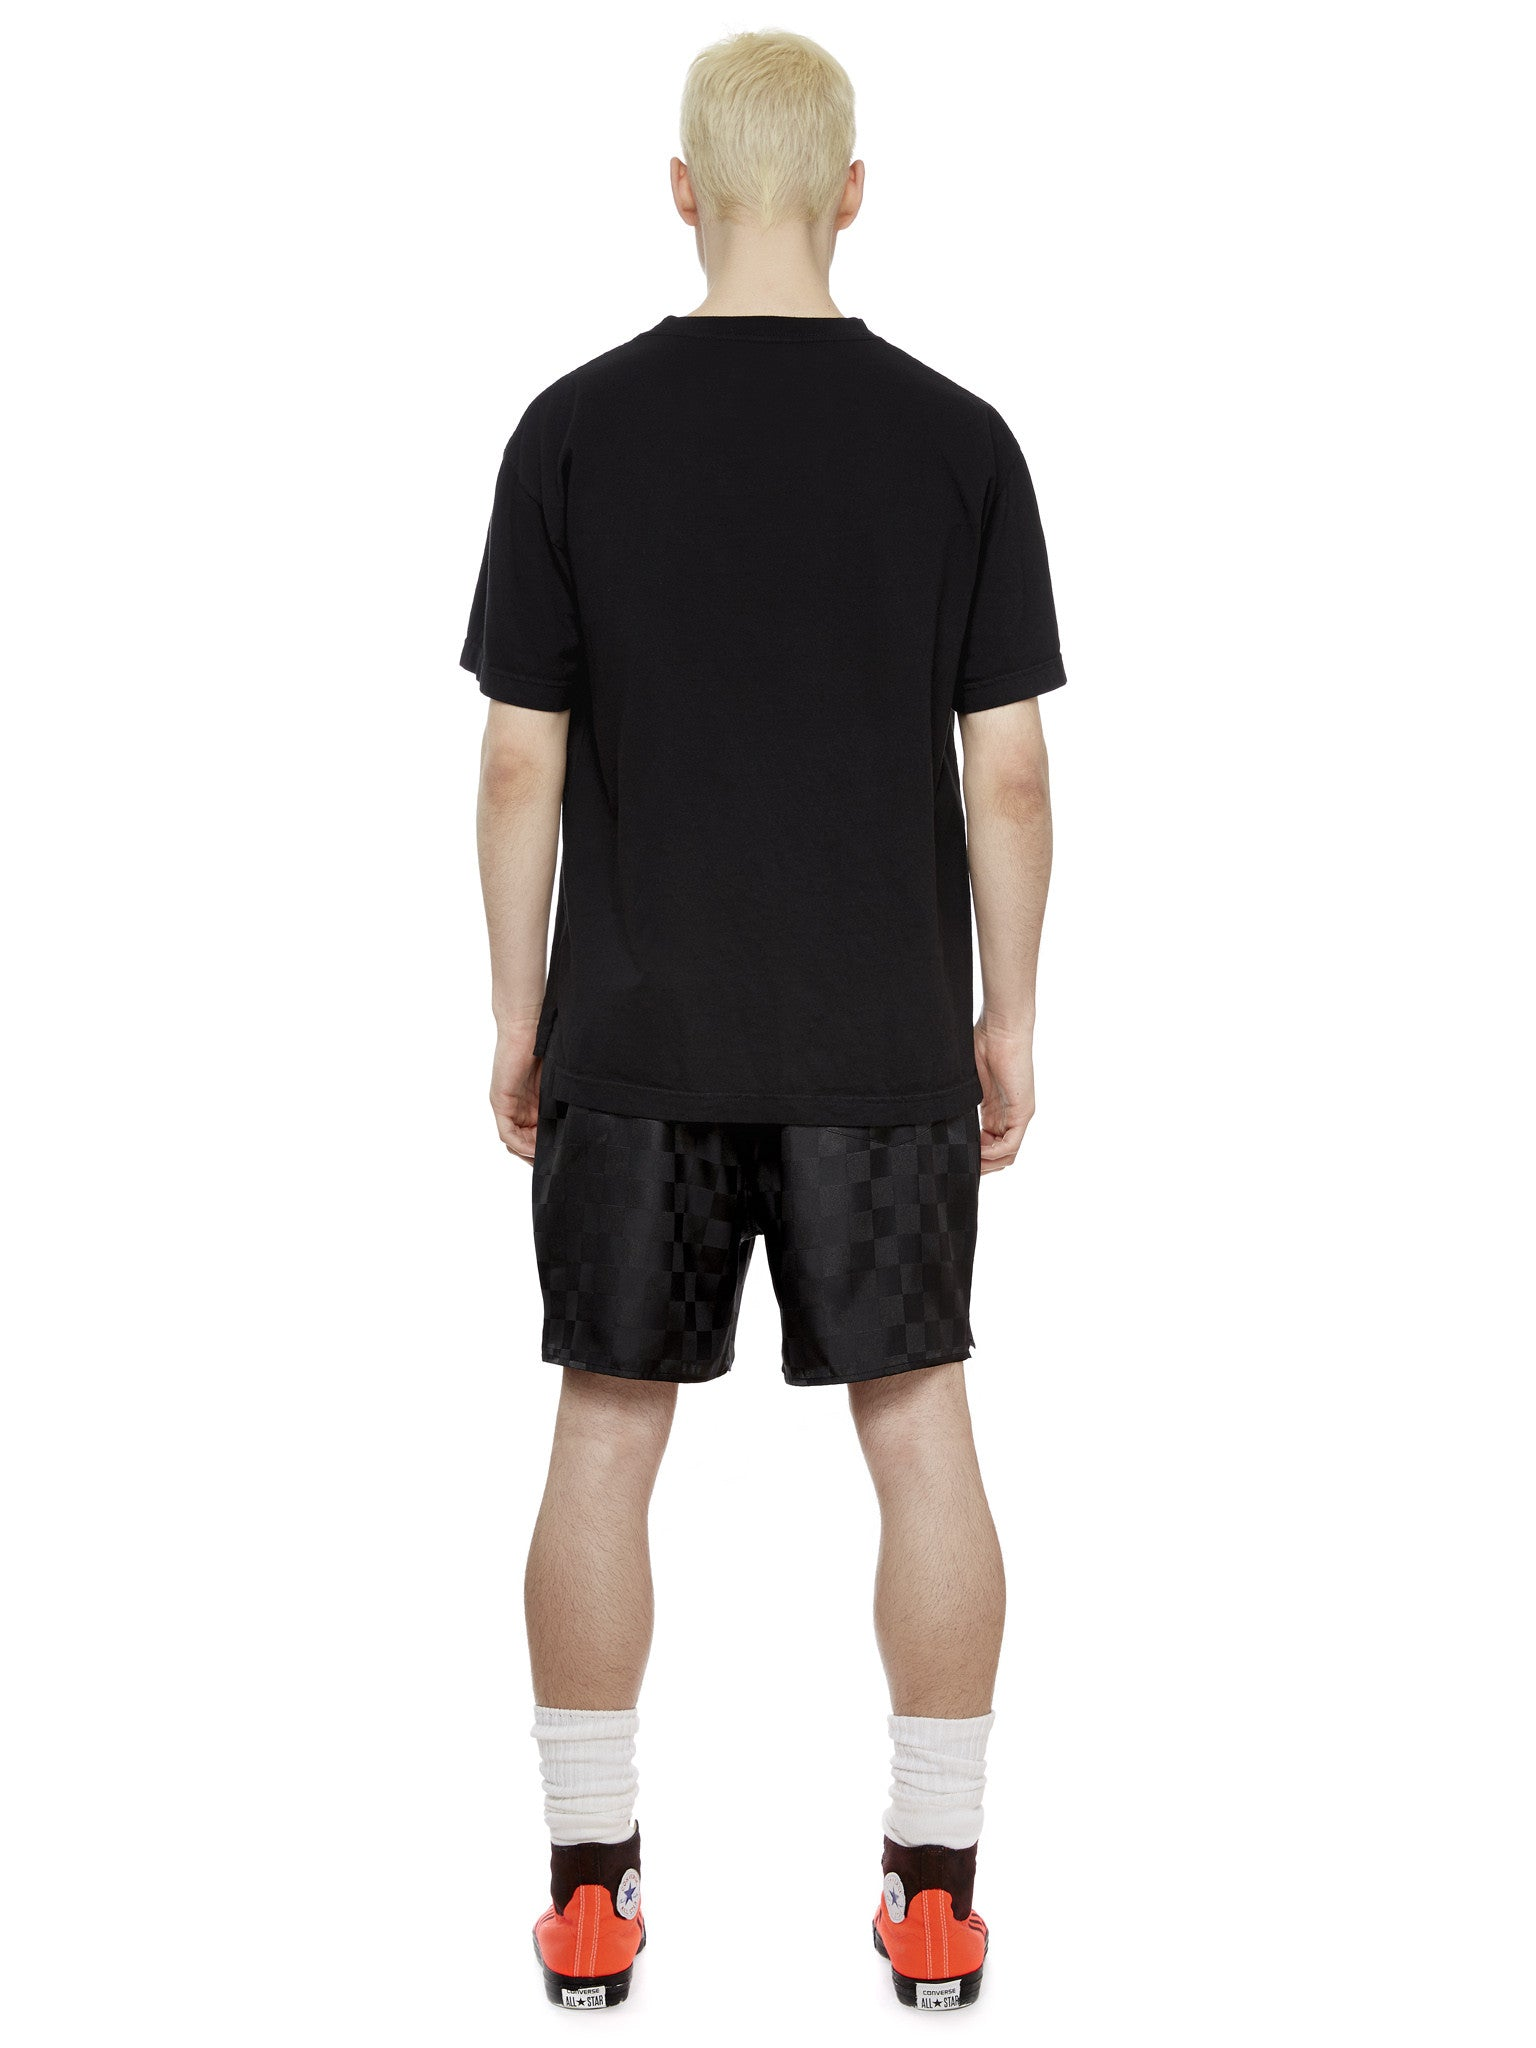 Soccer Short in Black